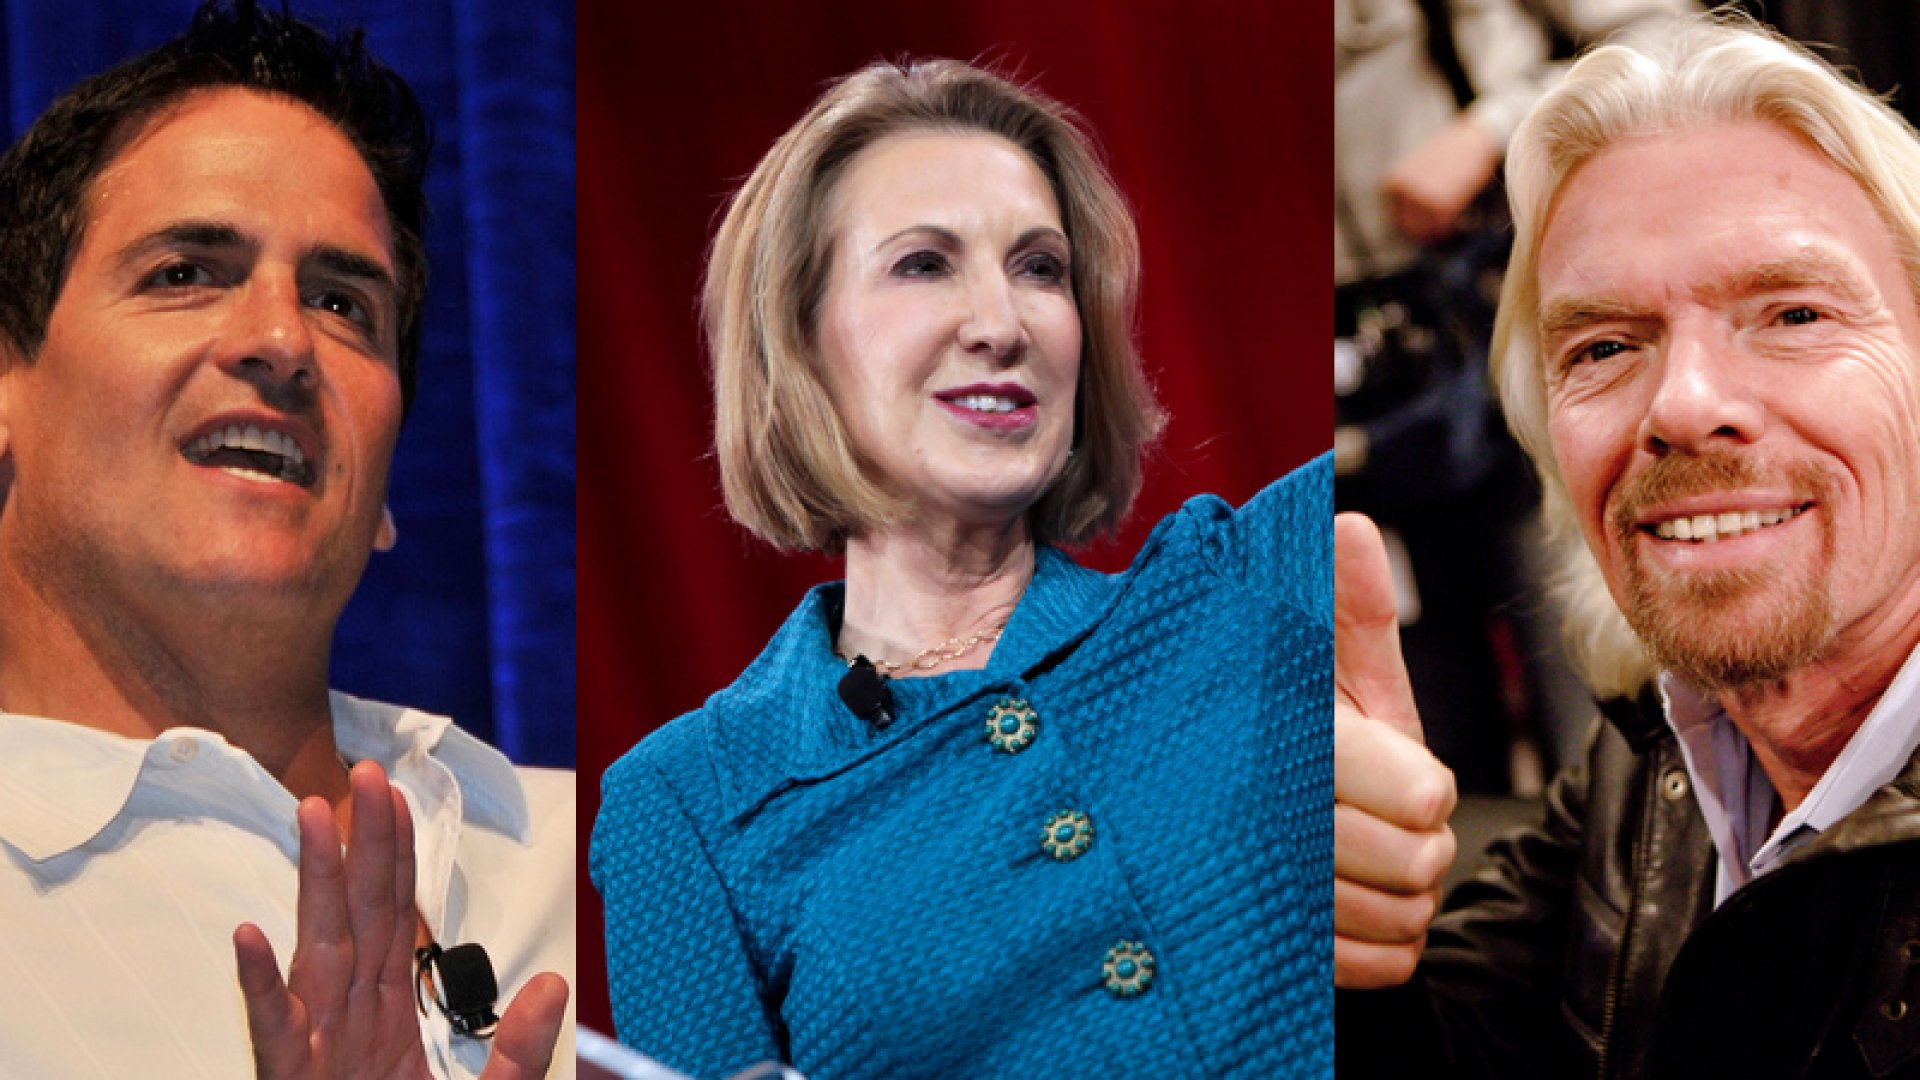 How Much Mark Cuban, Carly Fiorina, and Richard Branson Make in Speaking Fees